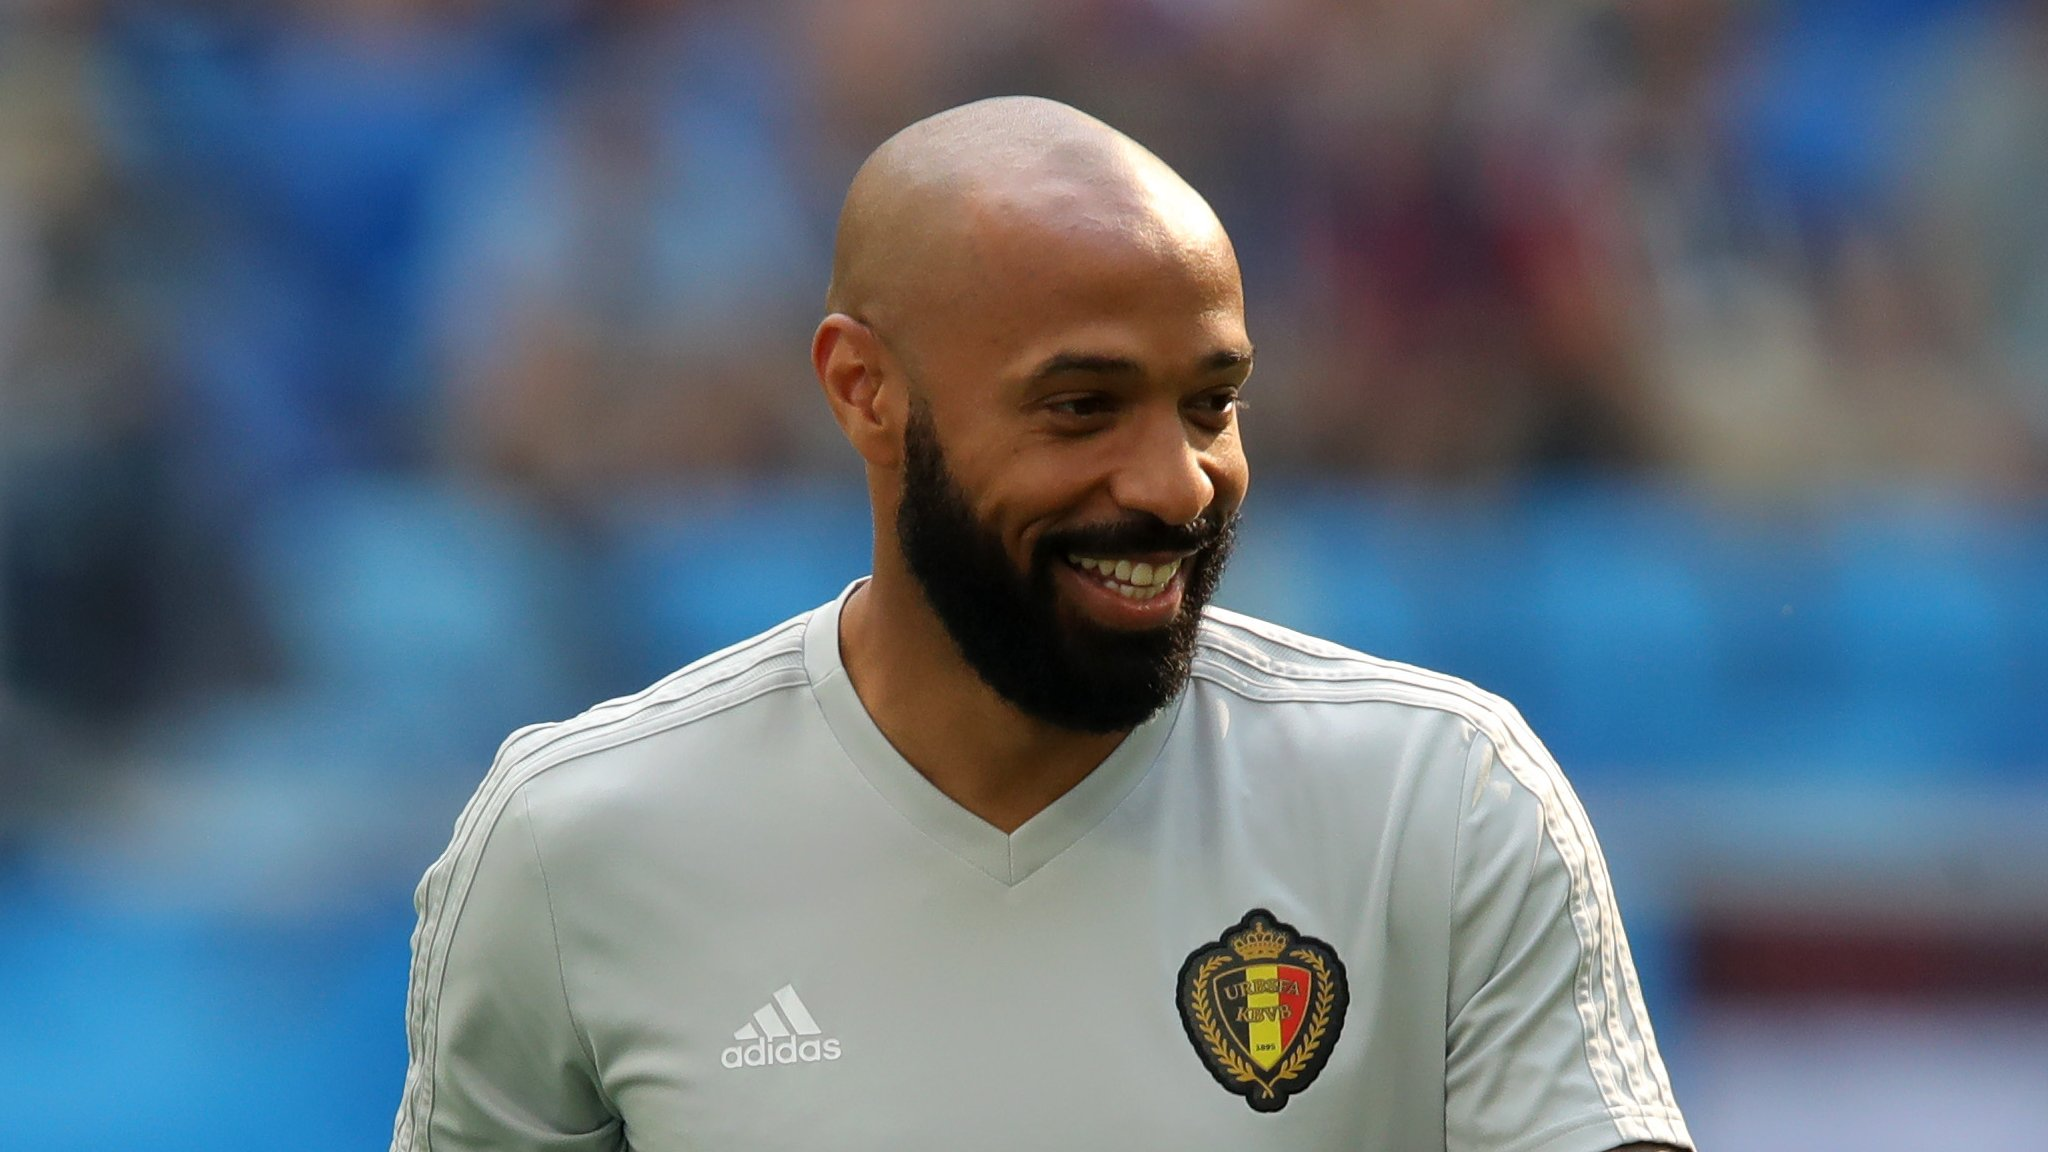 Henry quits Sky to focus on management ambition